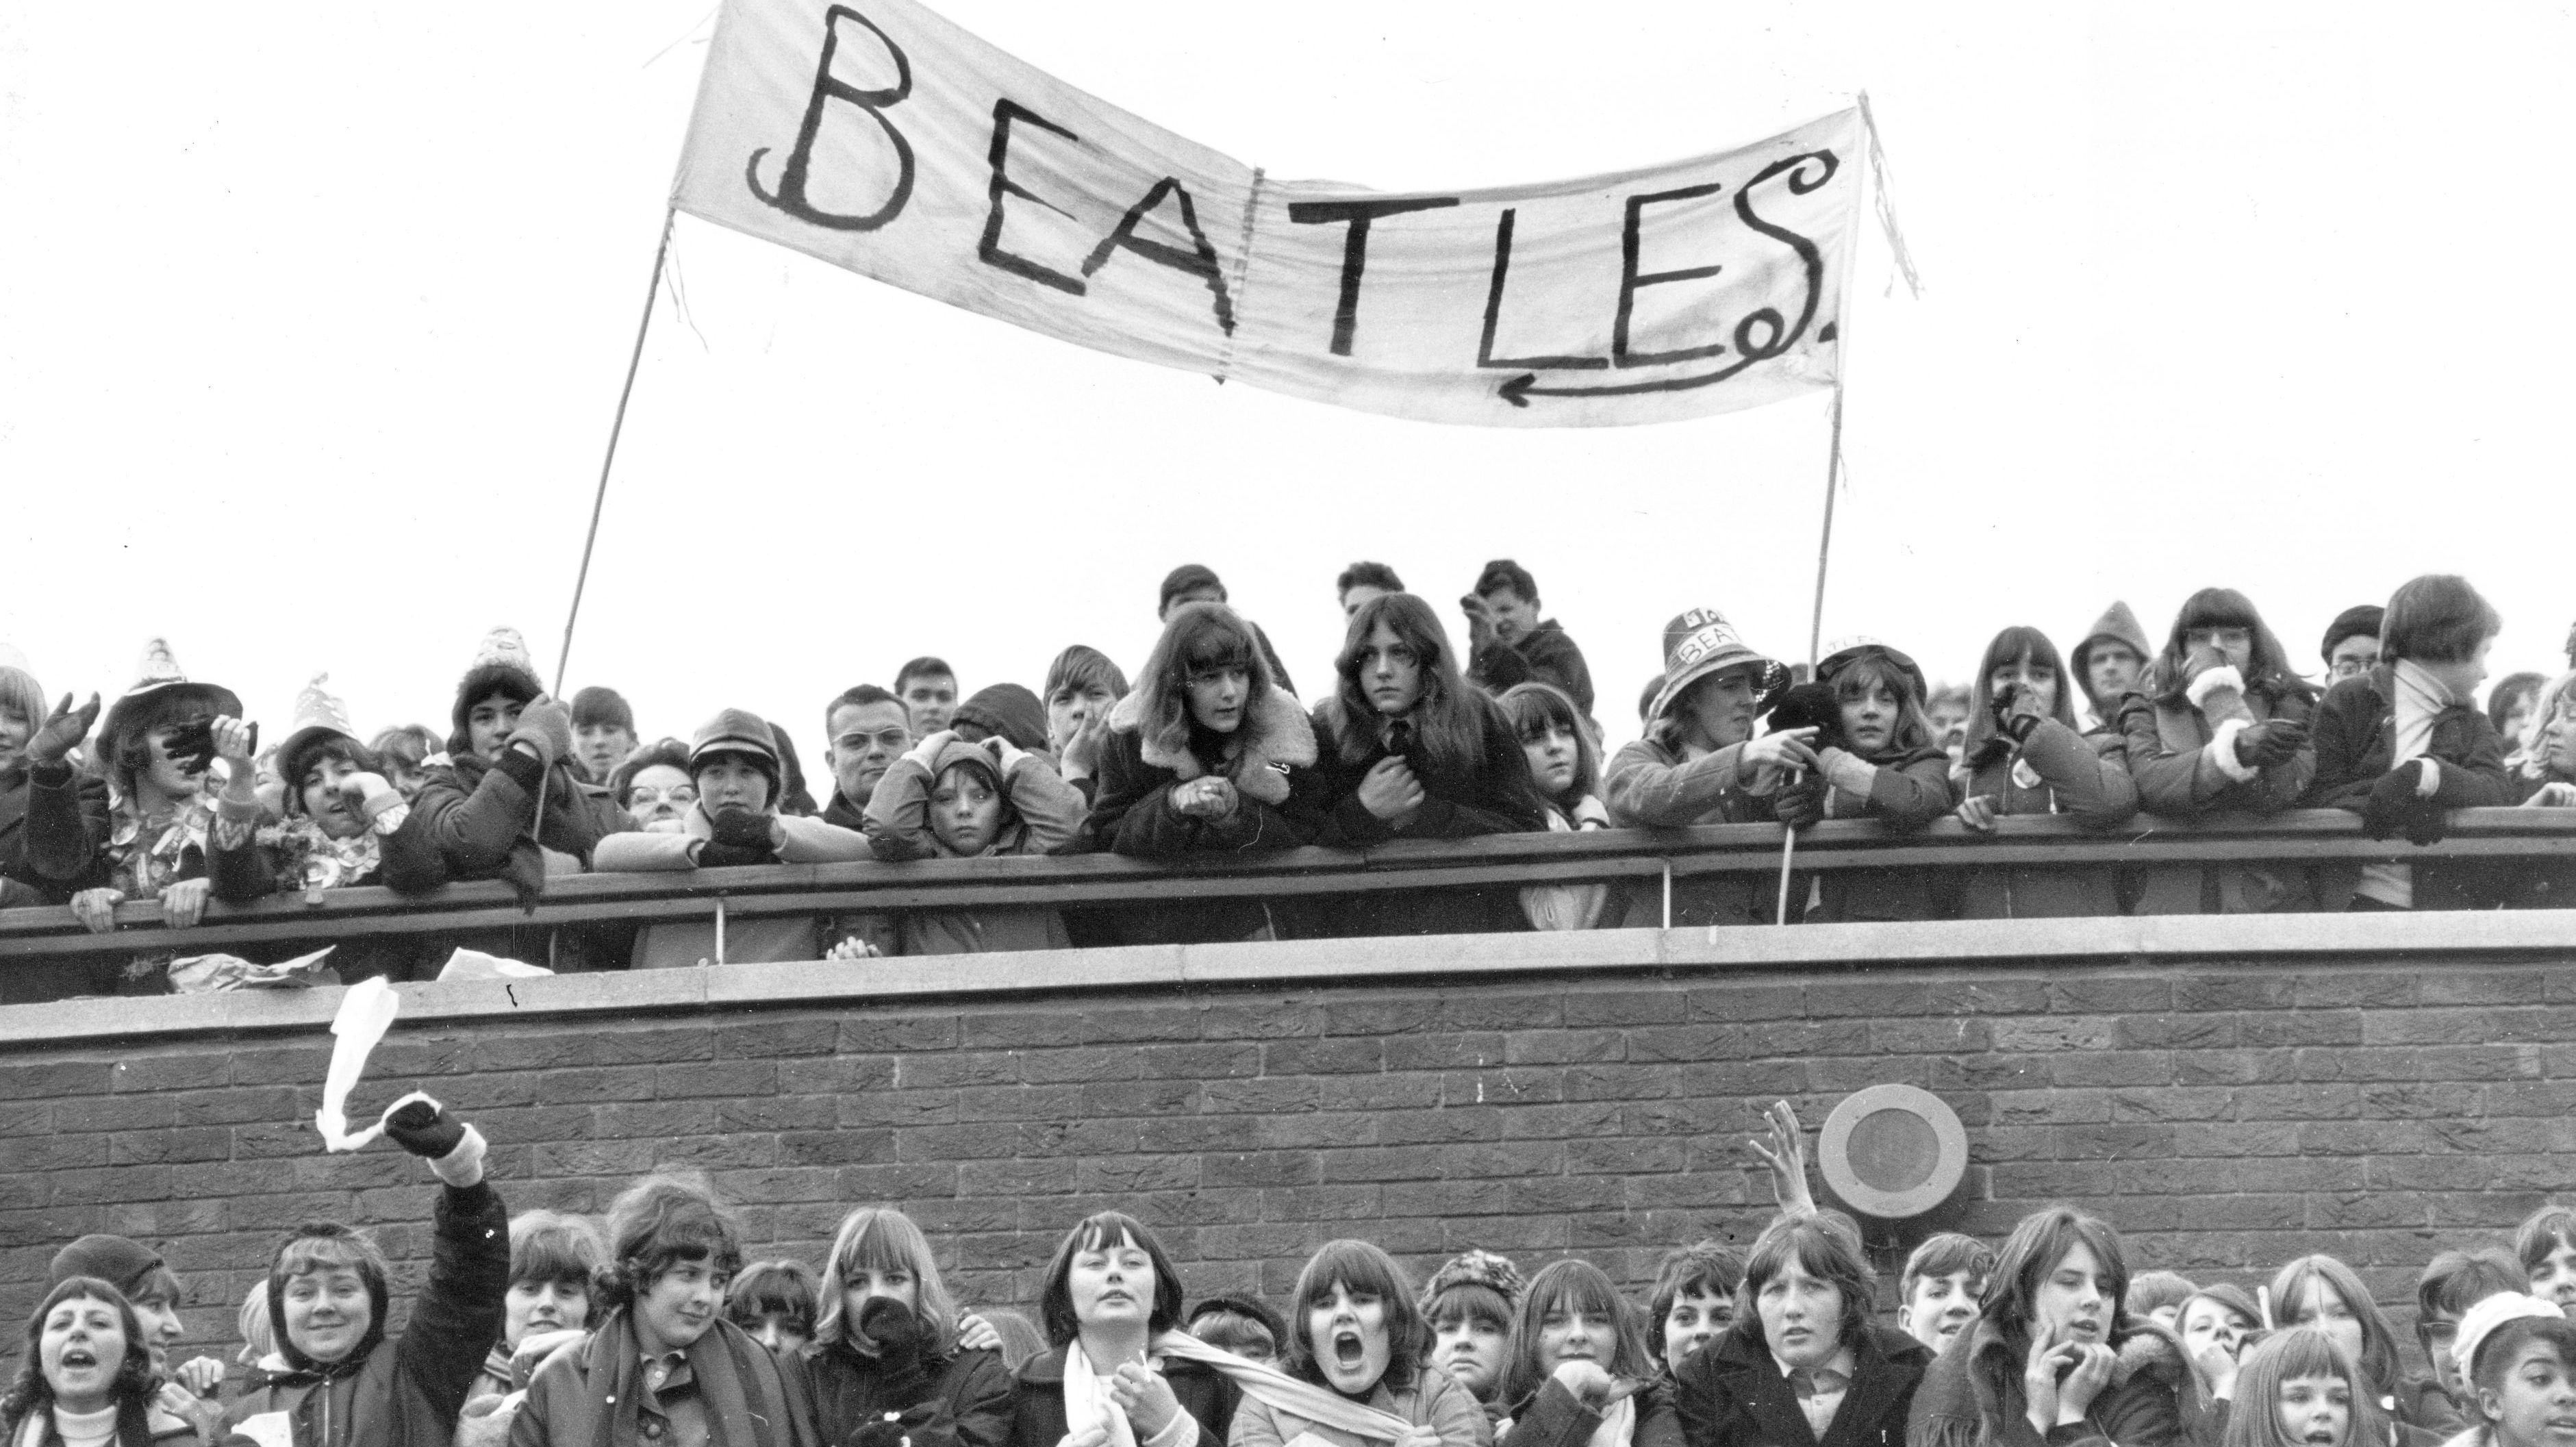 22nd February 1965: A crowd of fans of British pop group The Beatles at London Airport, where the group is due to take a flight to the Bahamas to film 'Help!'. (Photo by Central Press/Getty Images)